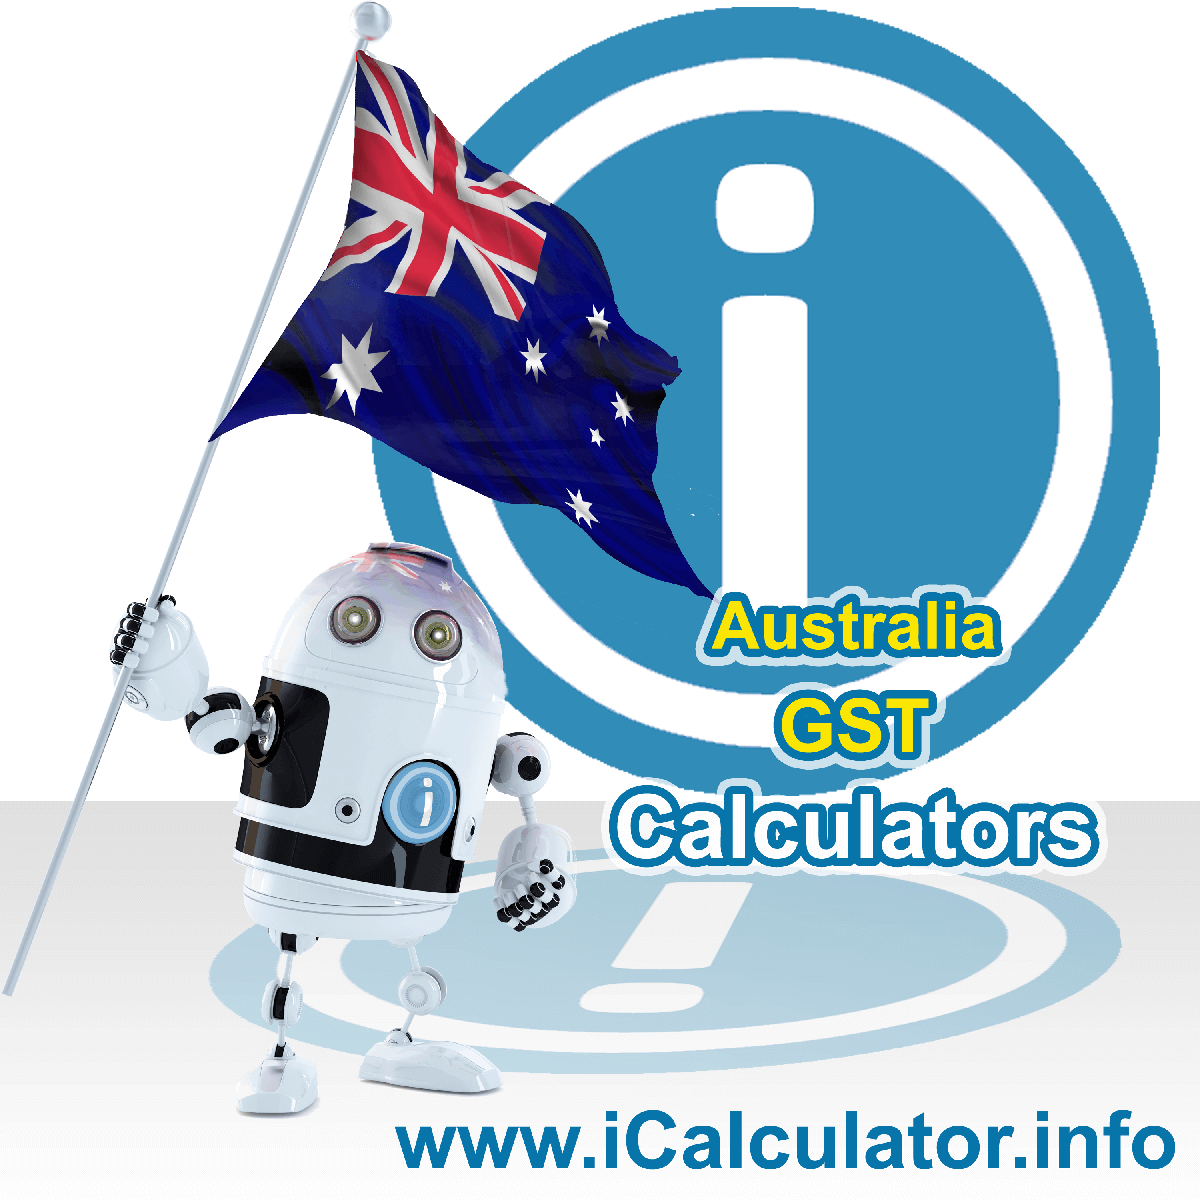 Australia GST Calculator. This image shows the Australia flag and information relating to the GST formula used for calculating goods and service Tax in Australia using the Australia GST Calculator in 2021